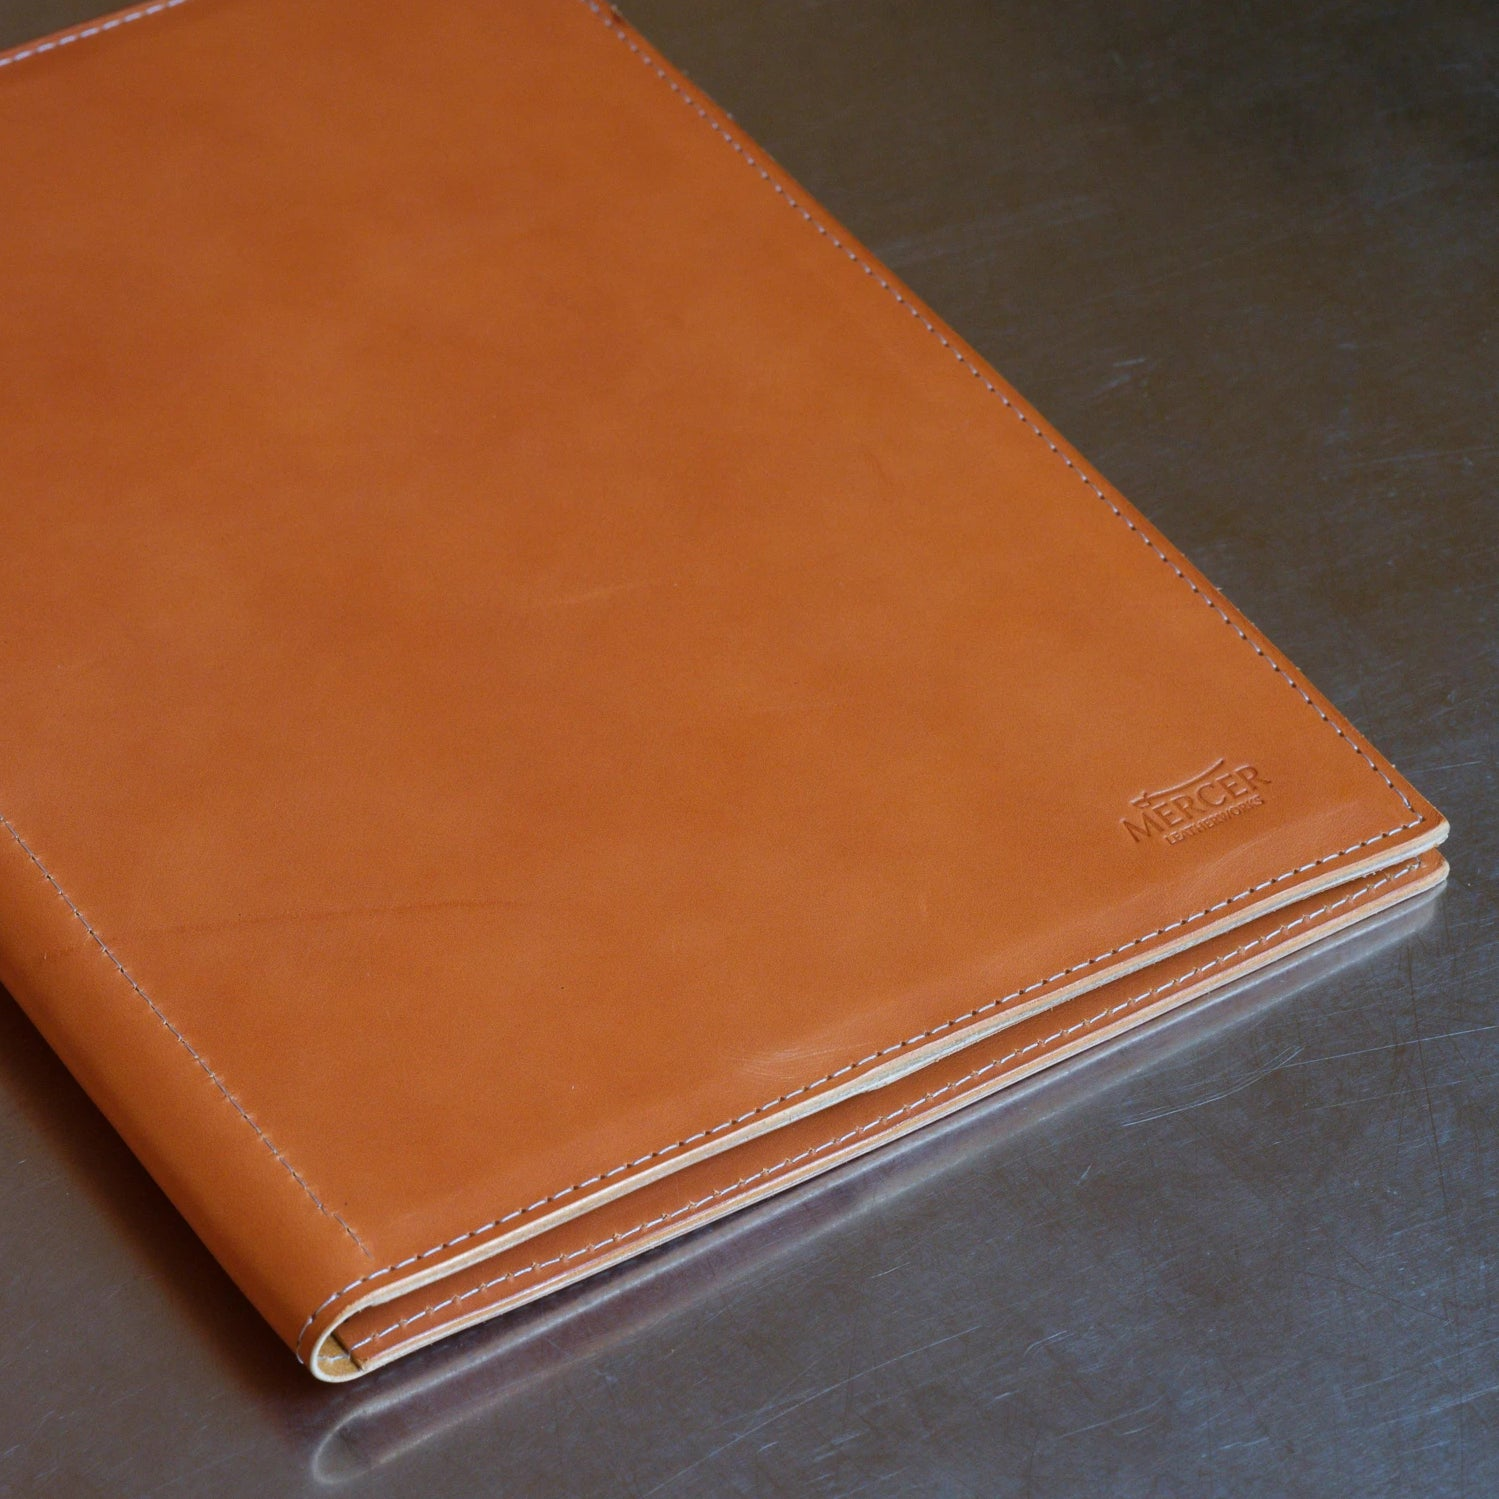 Carter leather folio